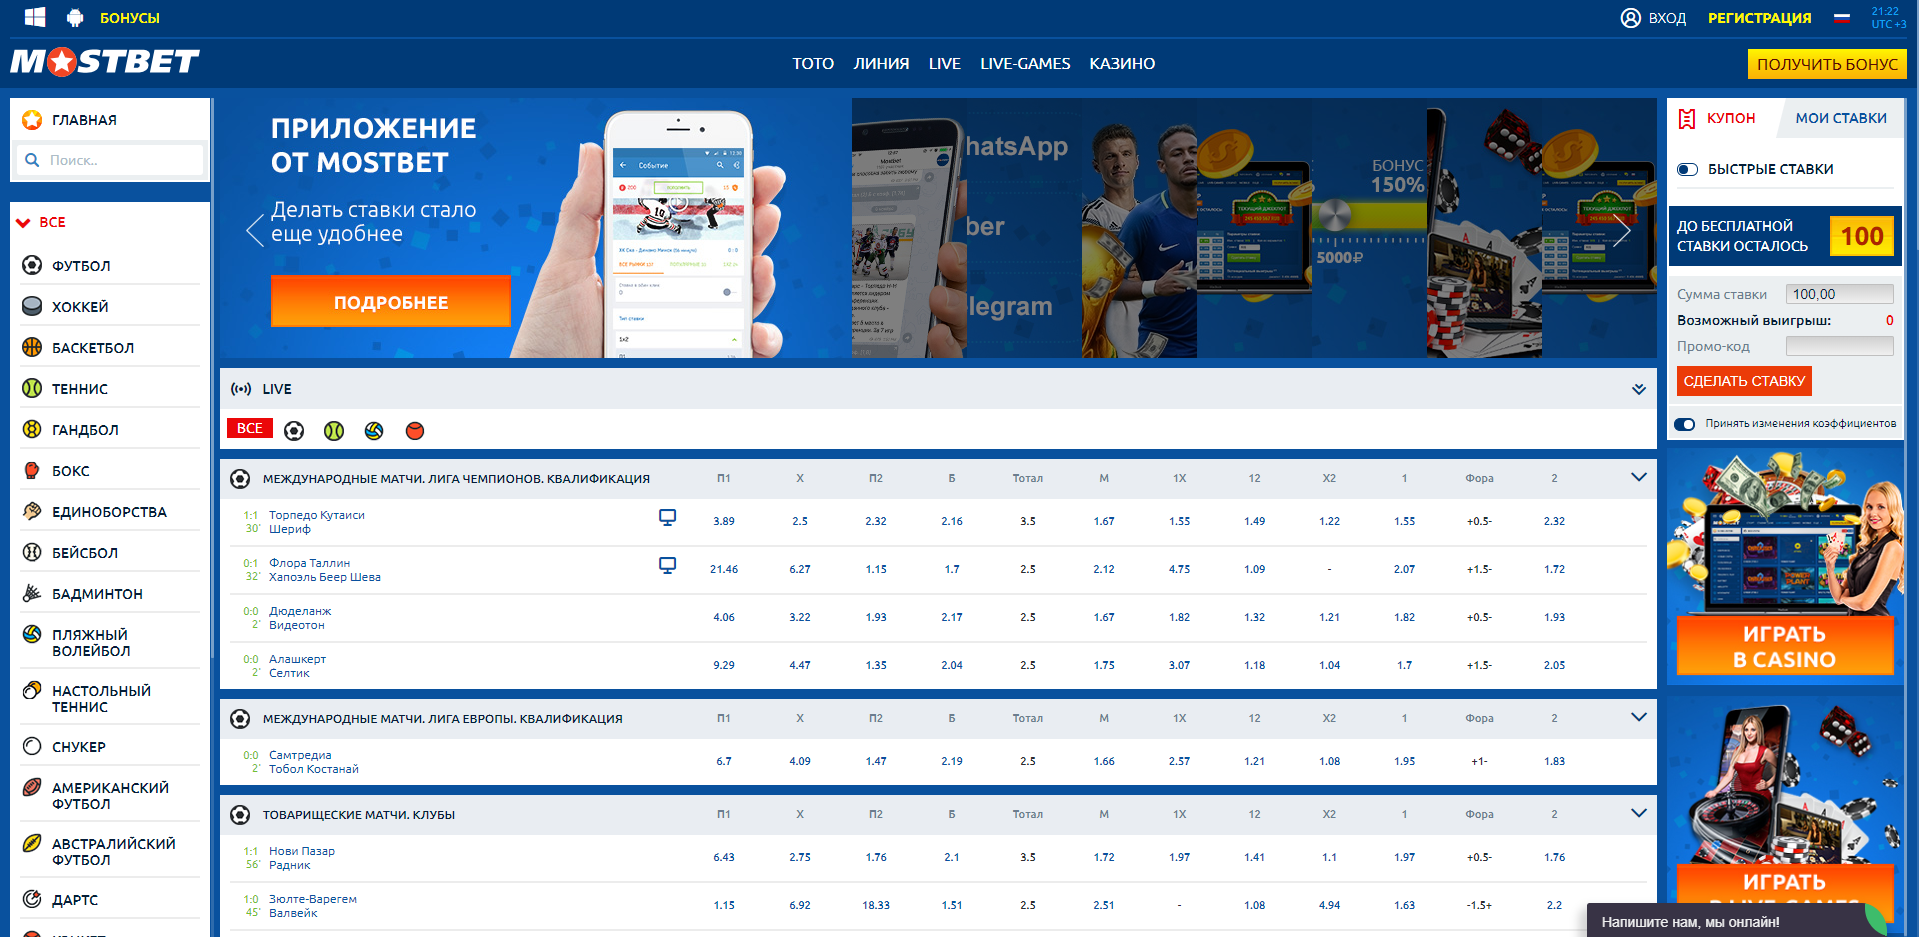 mostbet-website